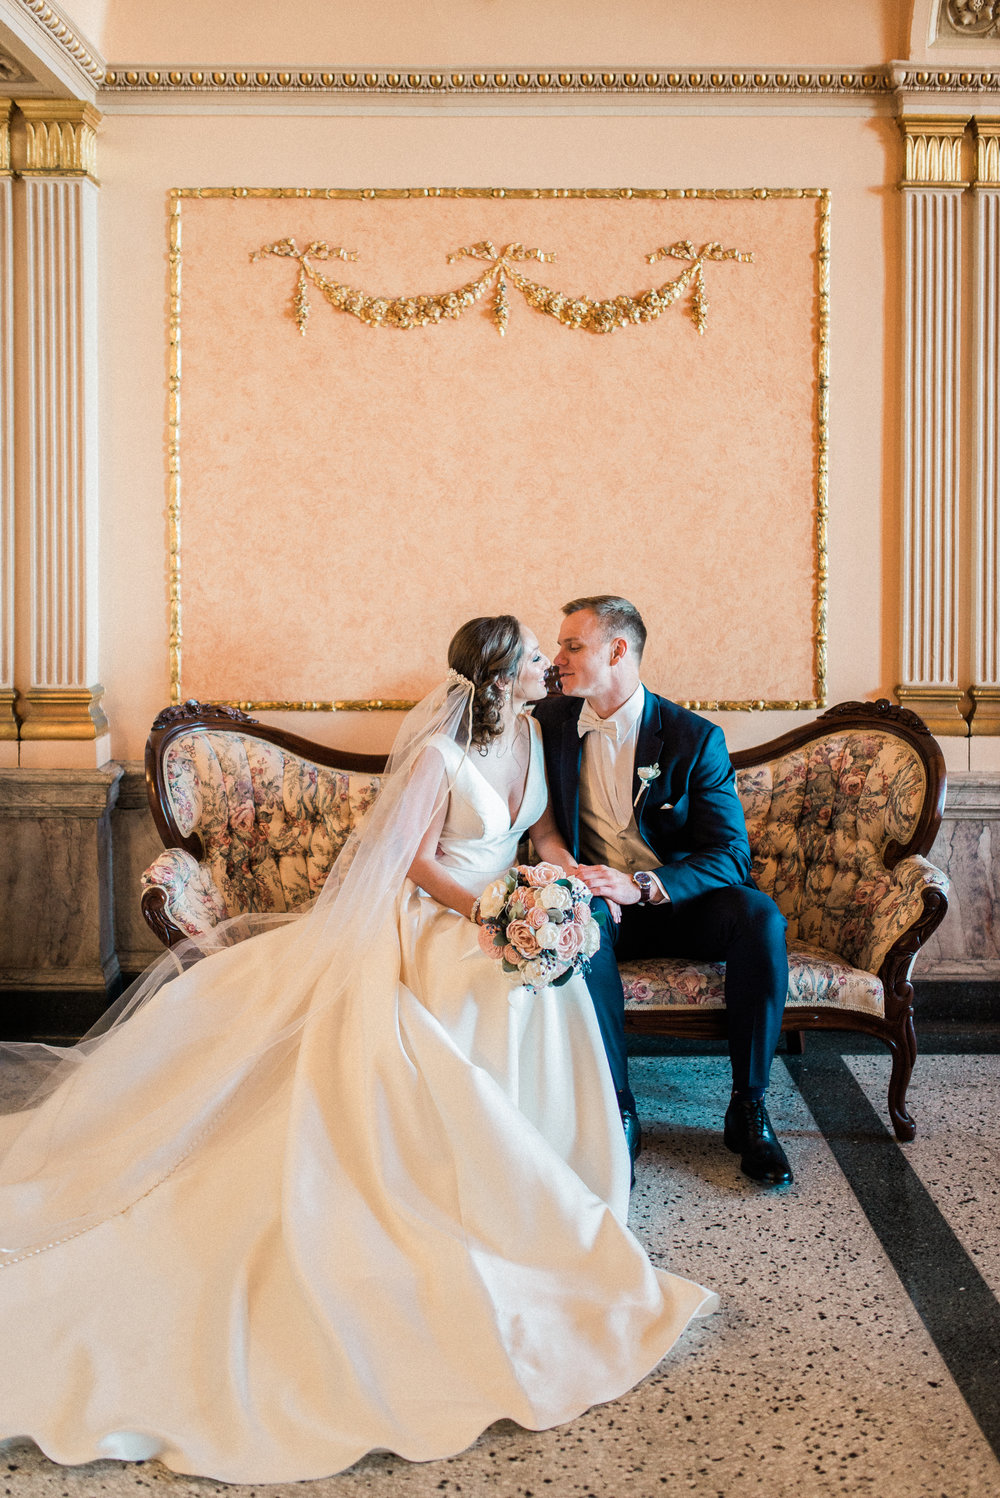 Skyler + Dan | A Tale as Old as Time Wedding at Morris Performing Arts Center in South Bend | Indianapolis Destination Wedding Photographers